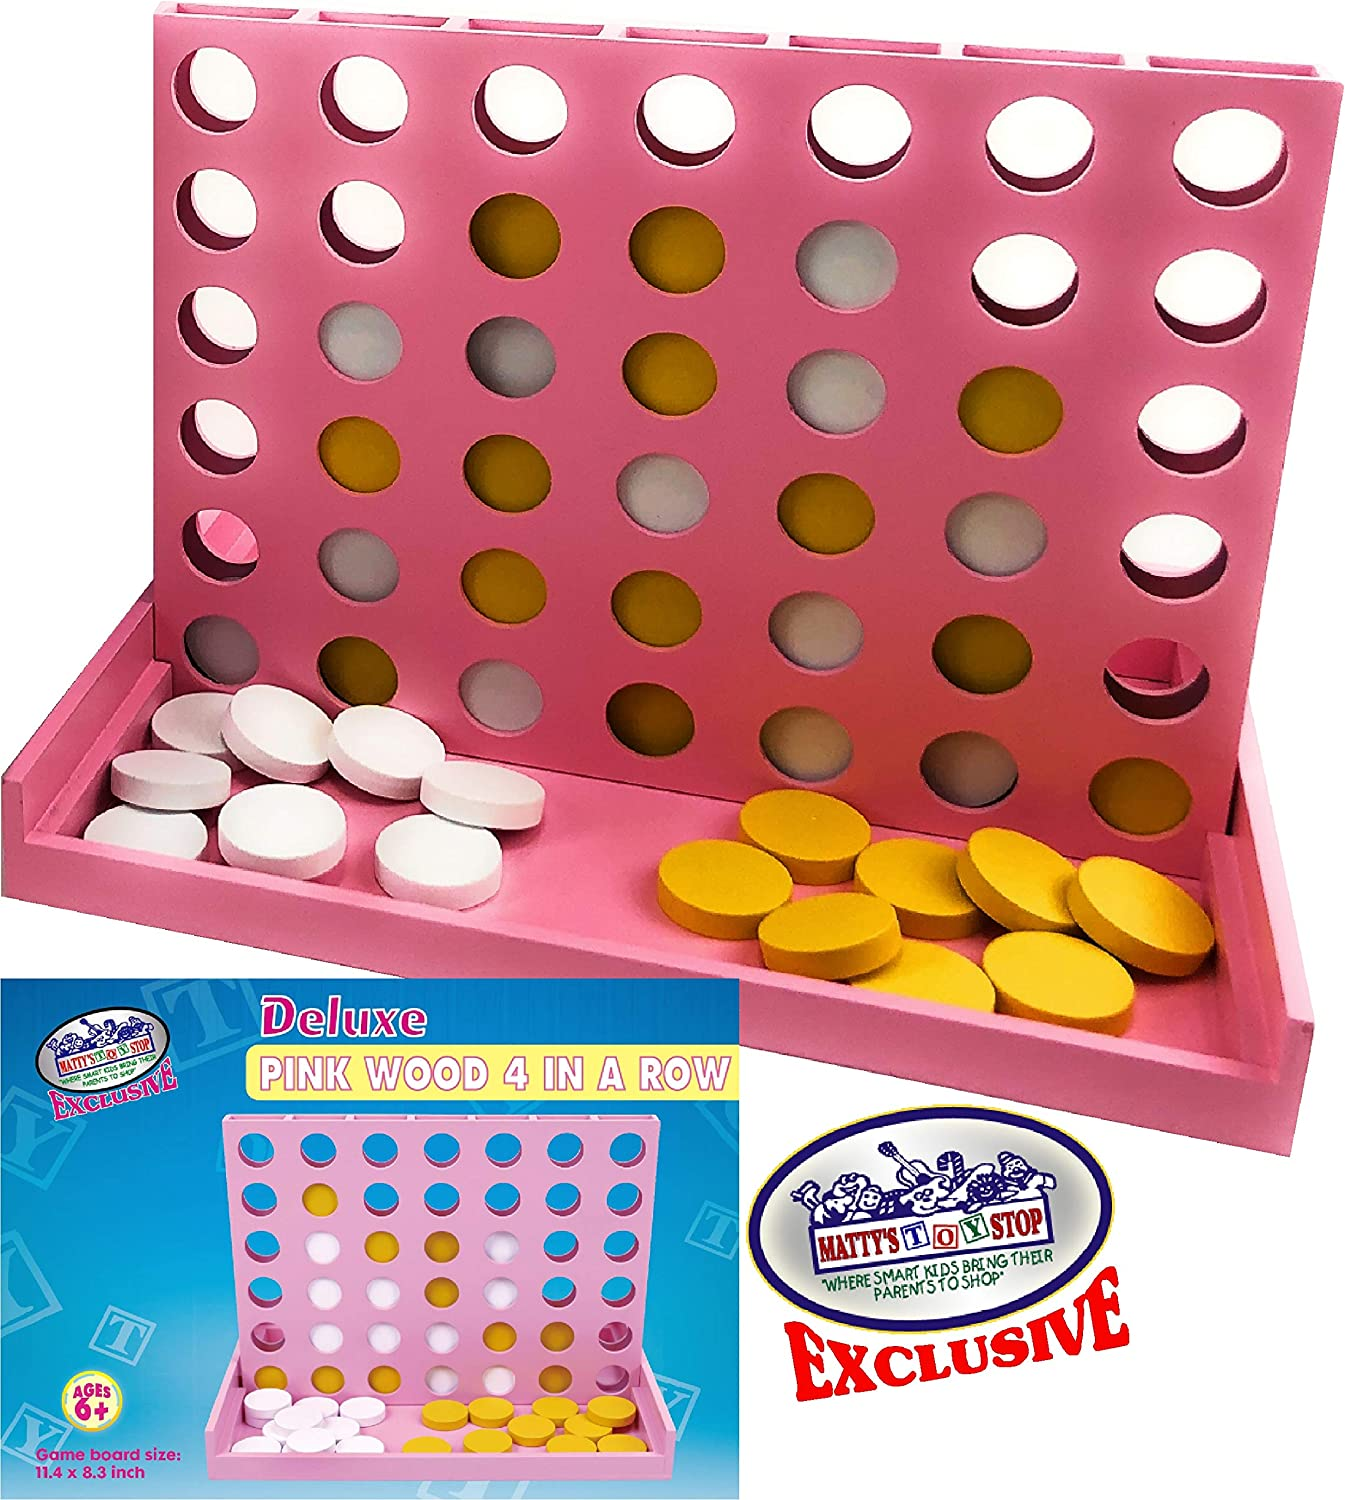 """Matty's Toy Stop Deluxe Pink Wooden 4 in a Row Game (12"""" x 8.5""""), Perfect for Home or Travel"""